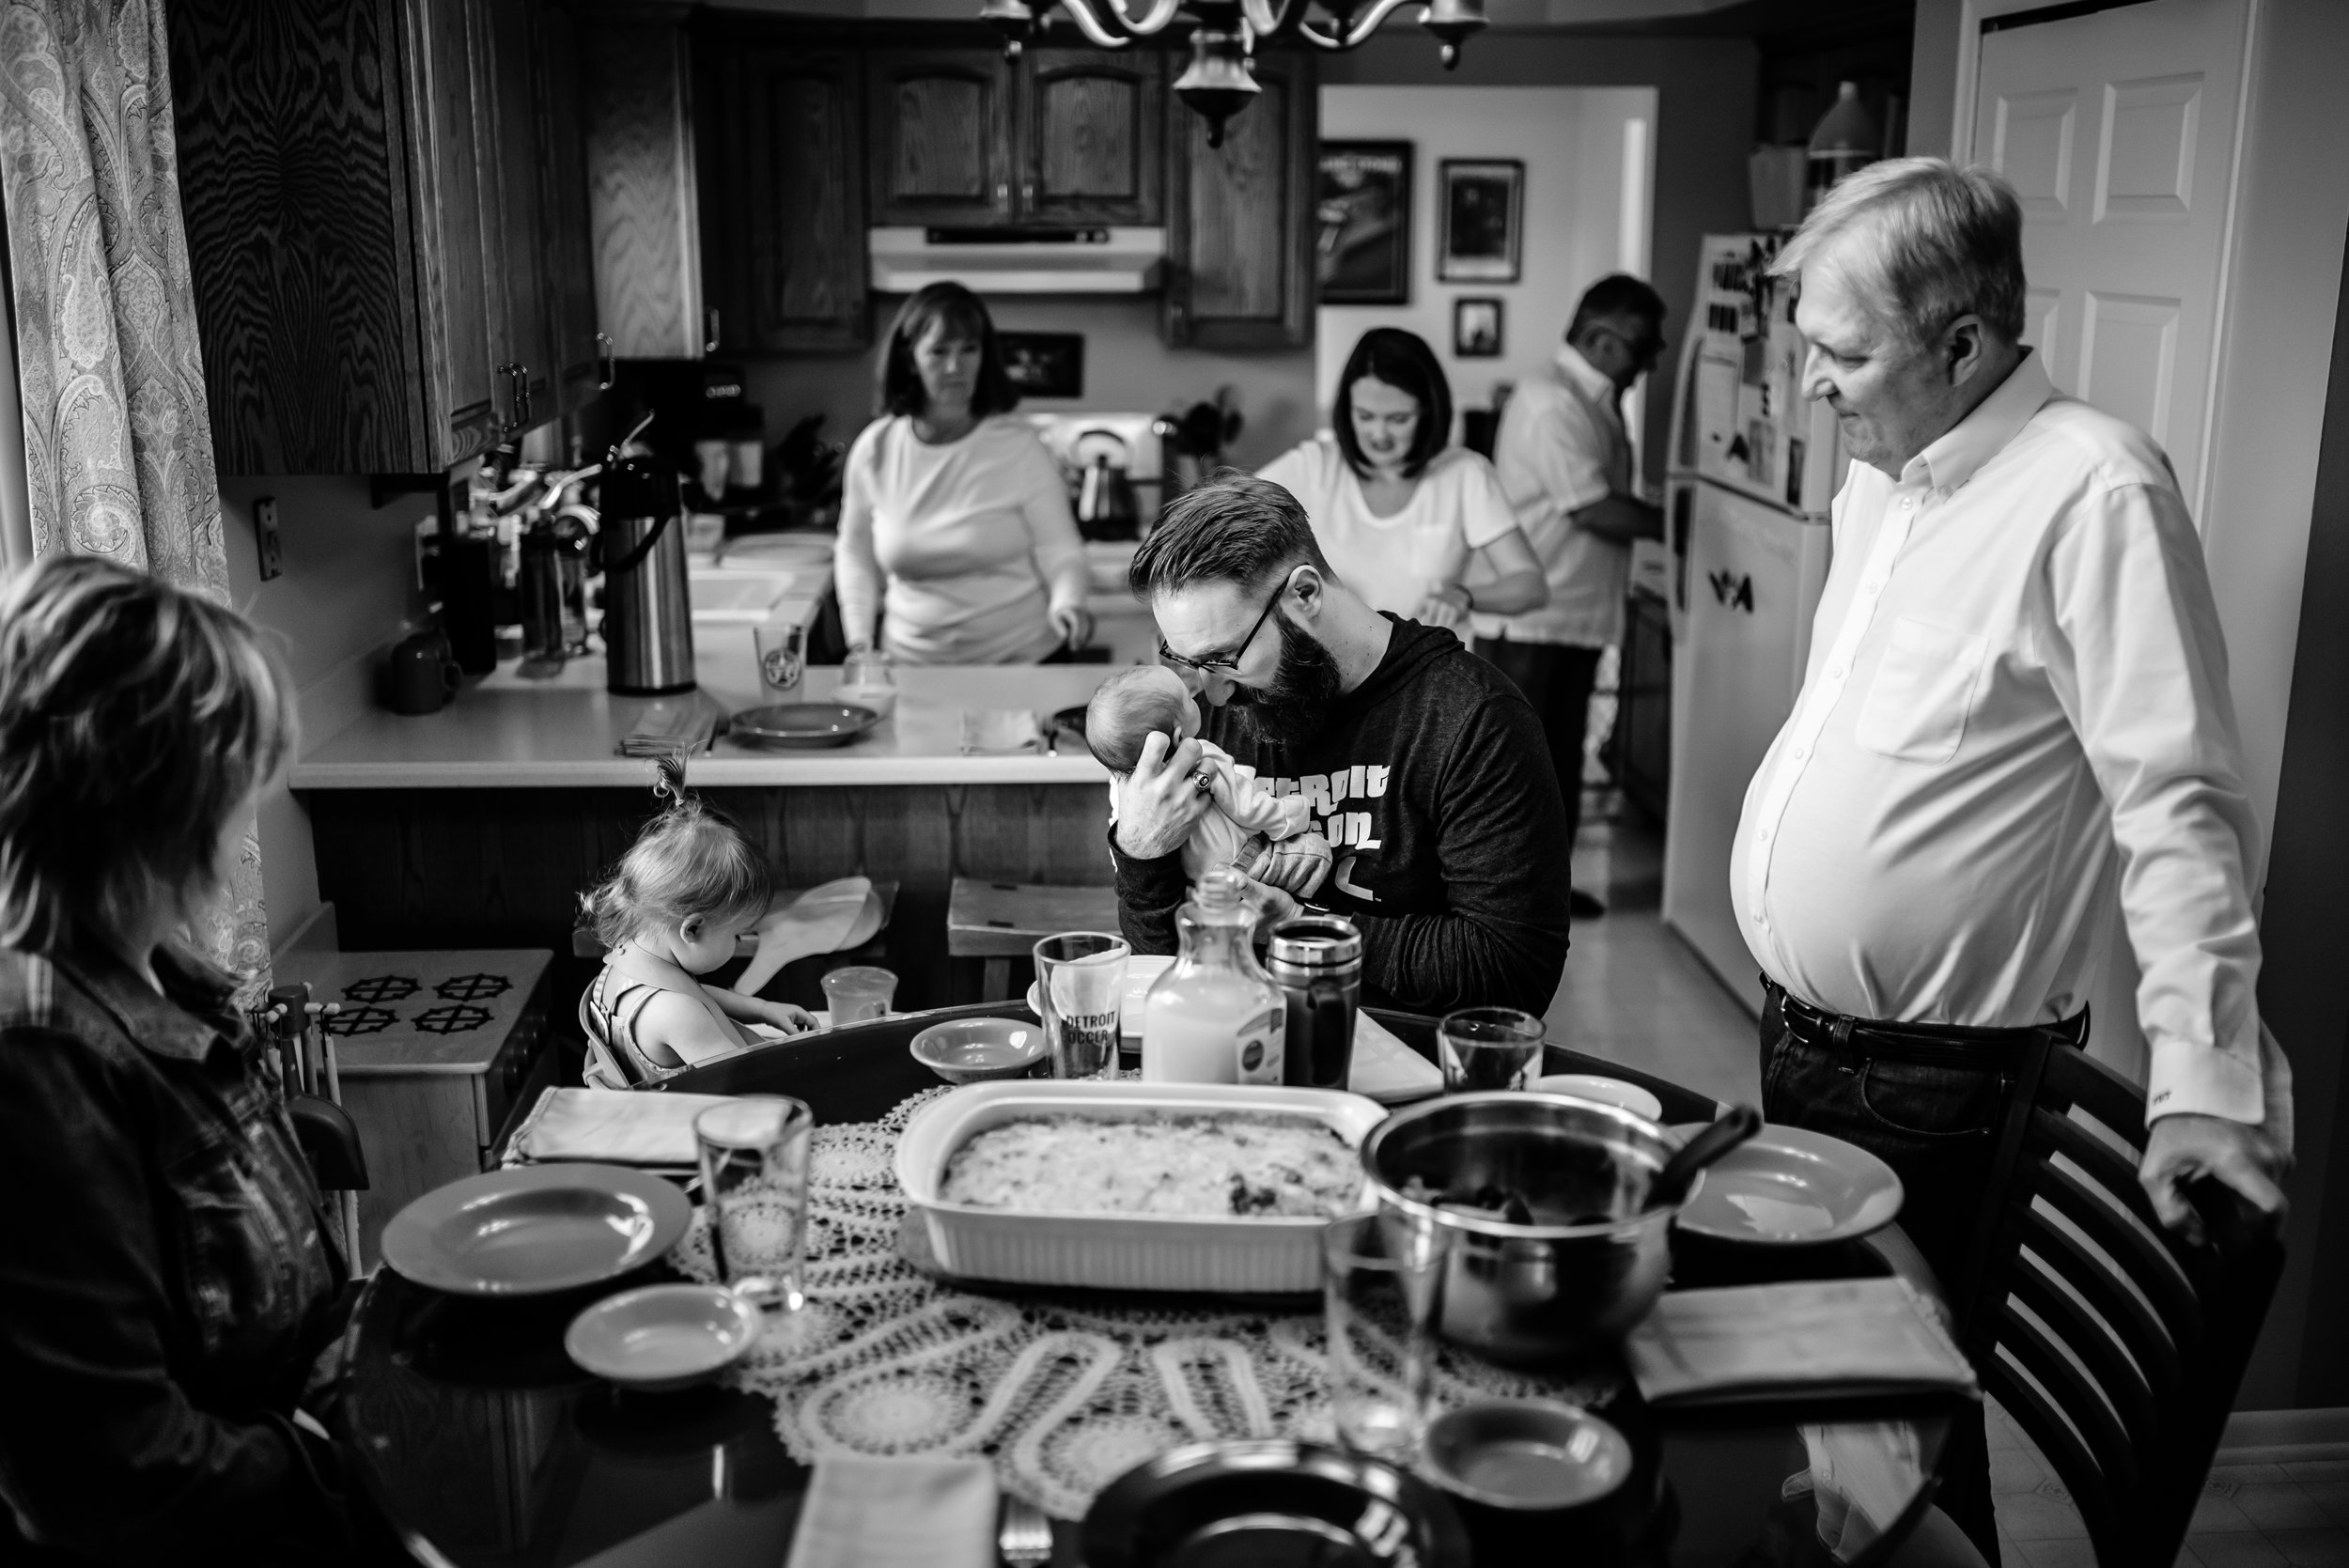 Family gathers for meal in kitchen, Dad has special moment with baby in center of chaos